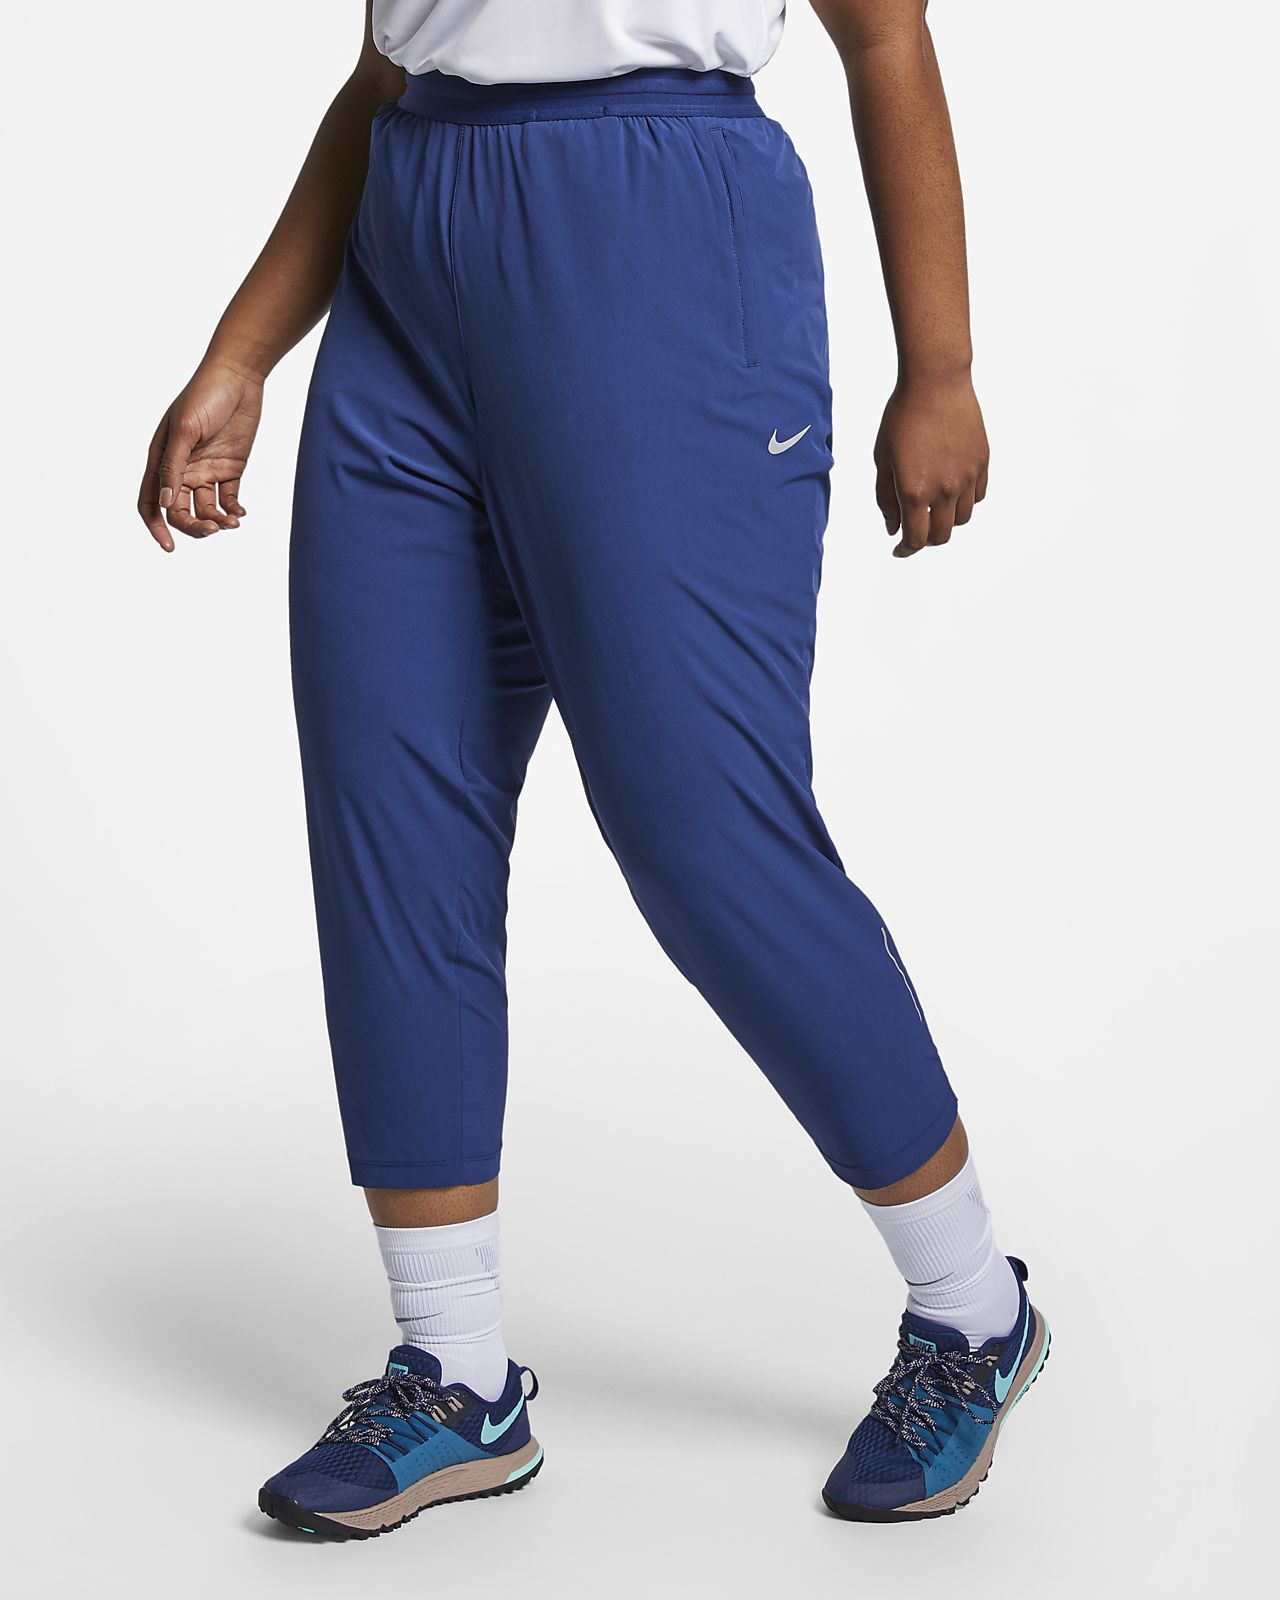 Nike Essential Women's 78 Running Trousers (Plus Size)